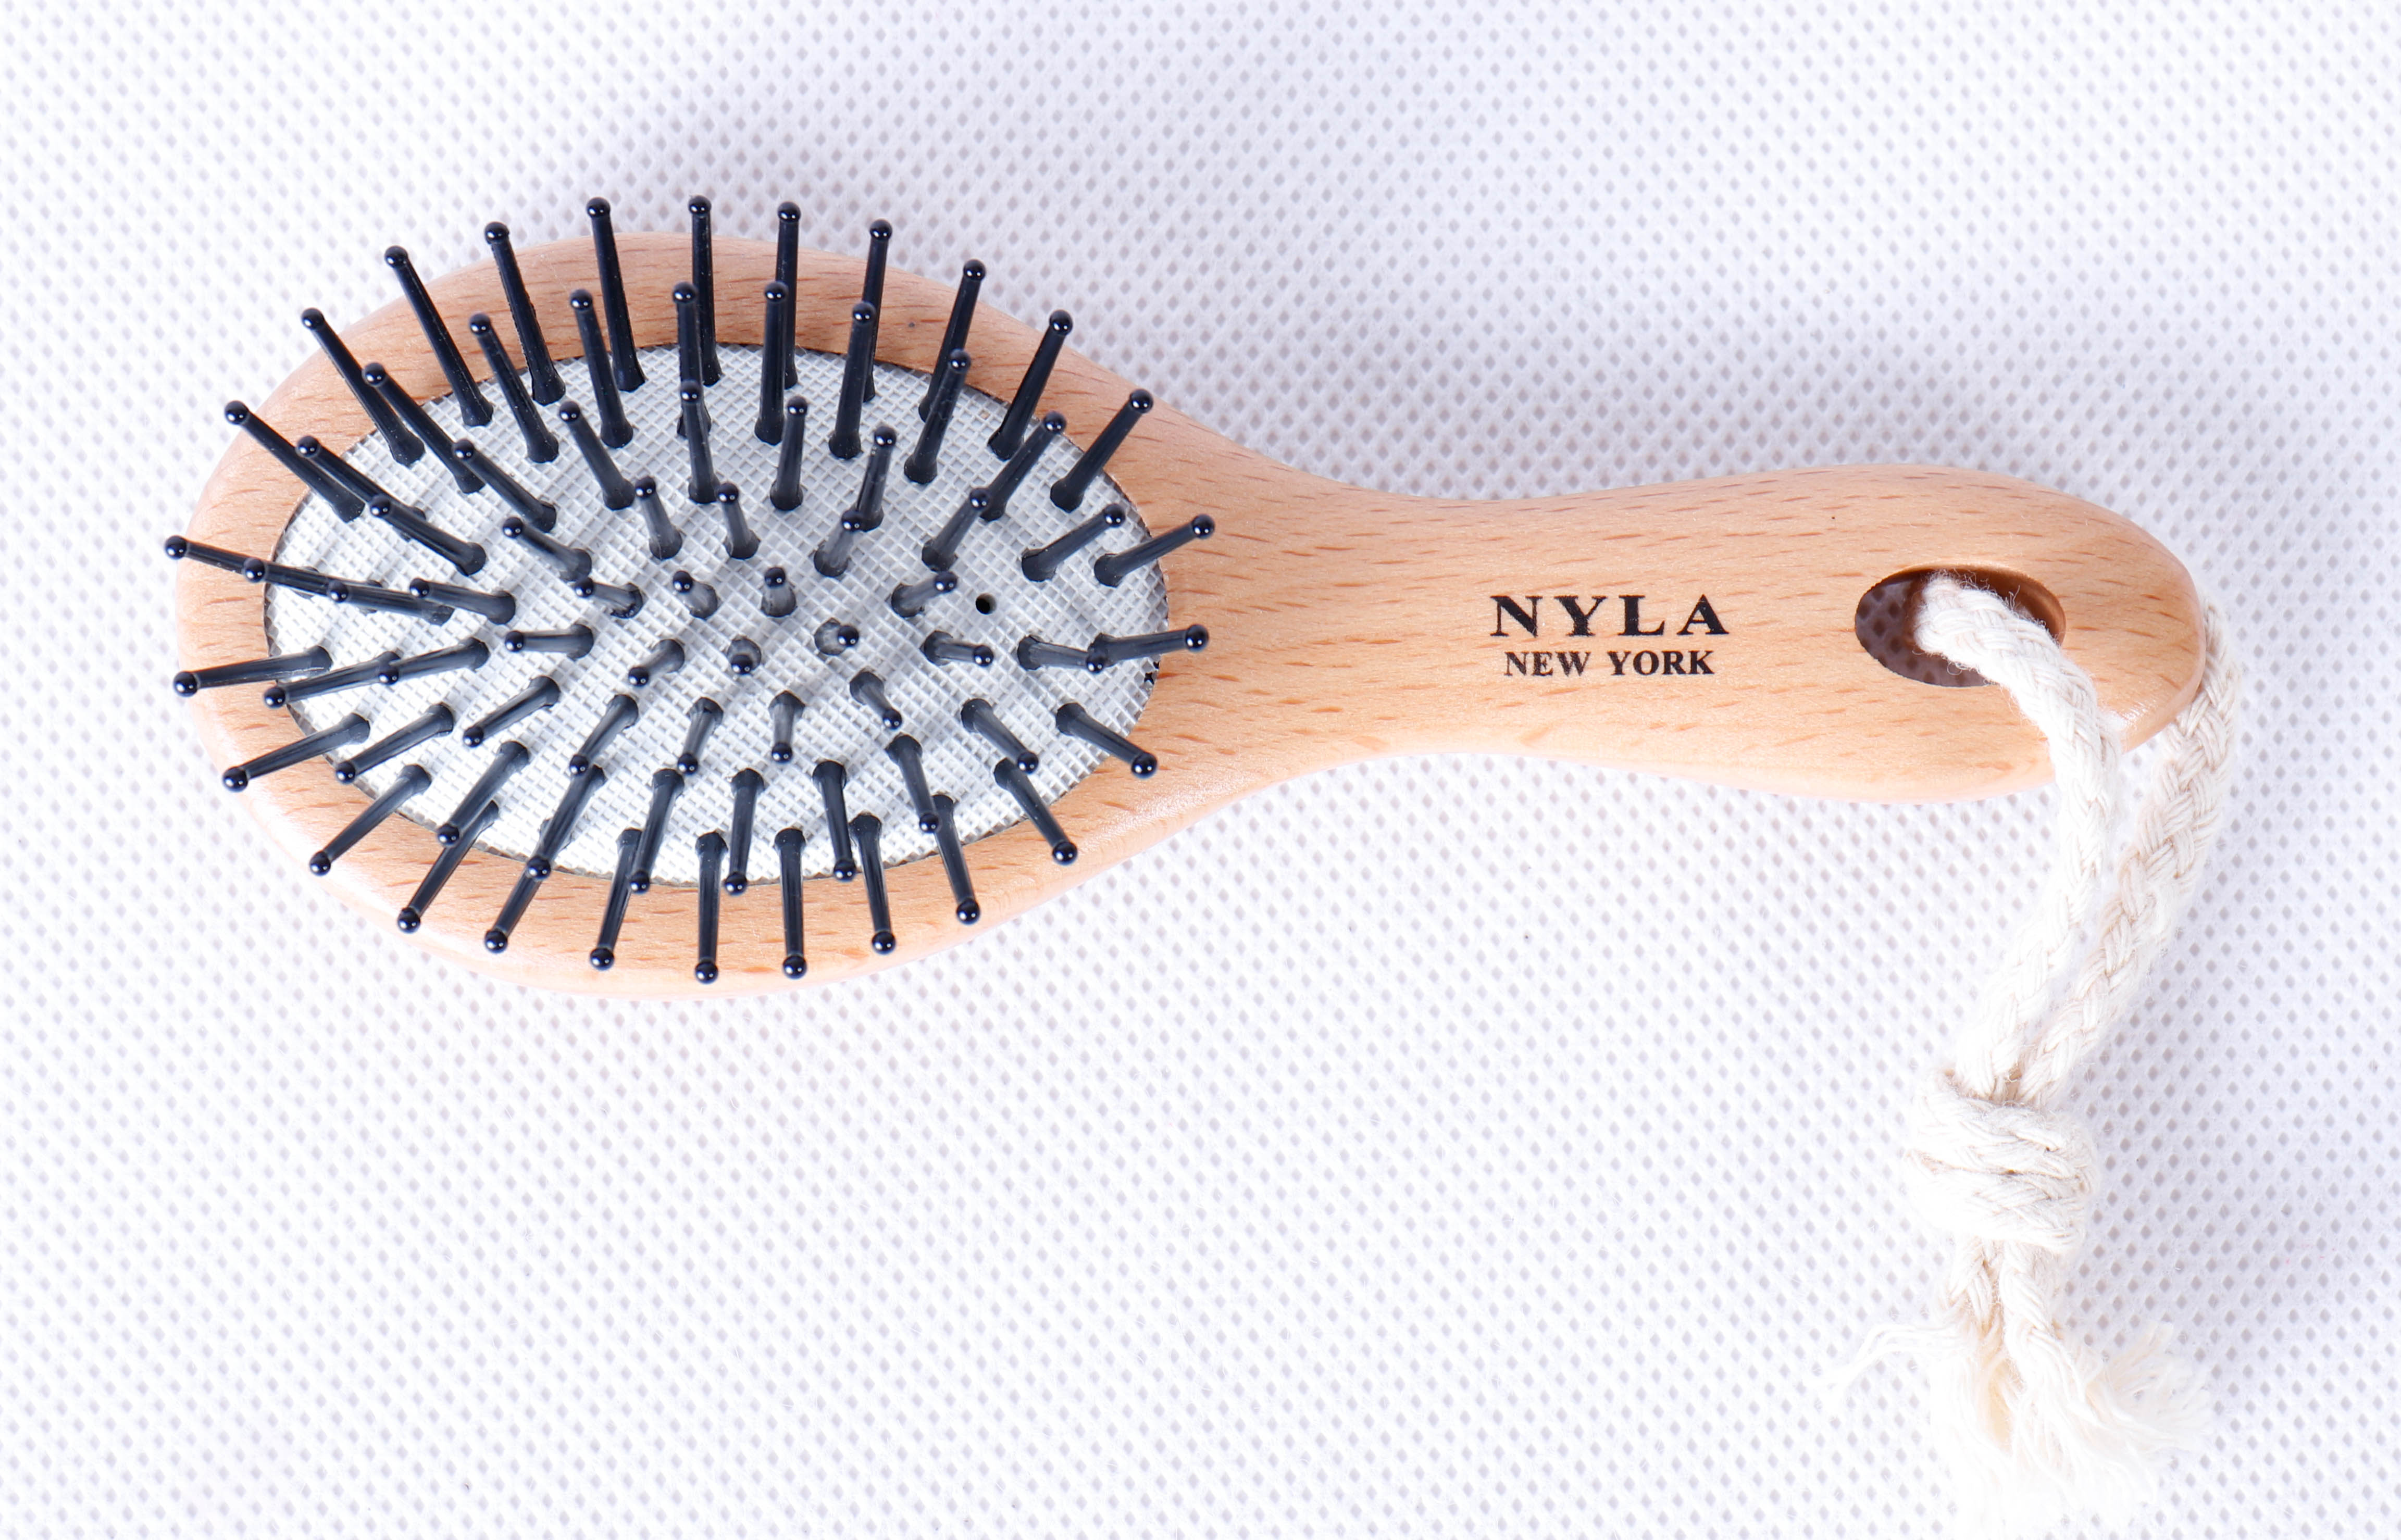 NYLA NEW YORK  HFBB013G.HAIR BRUSH